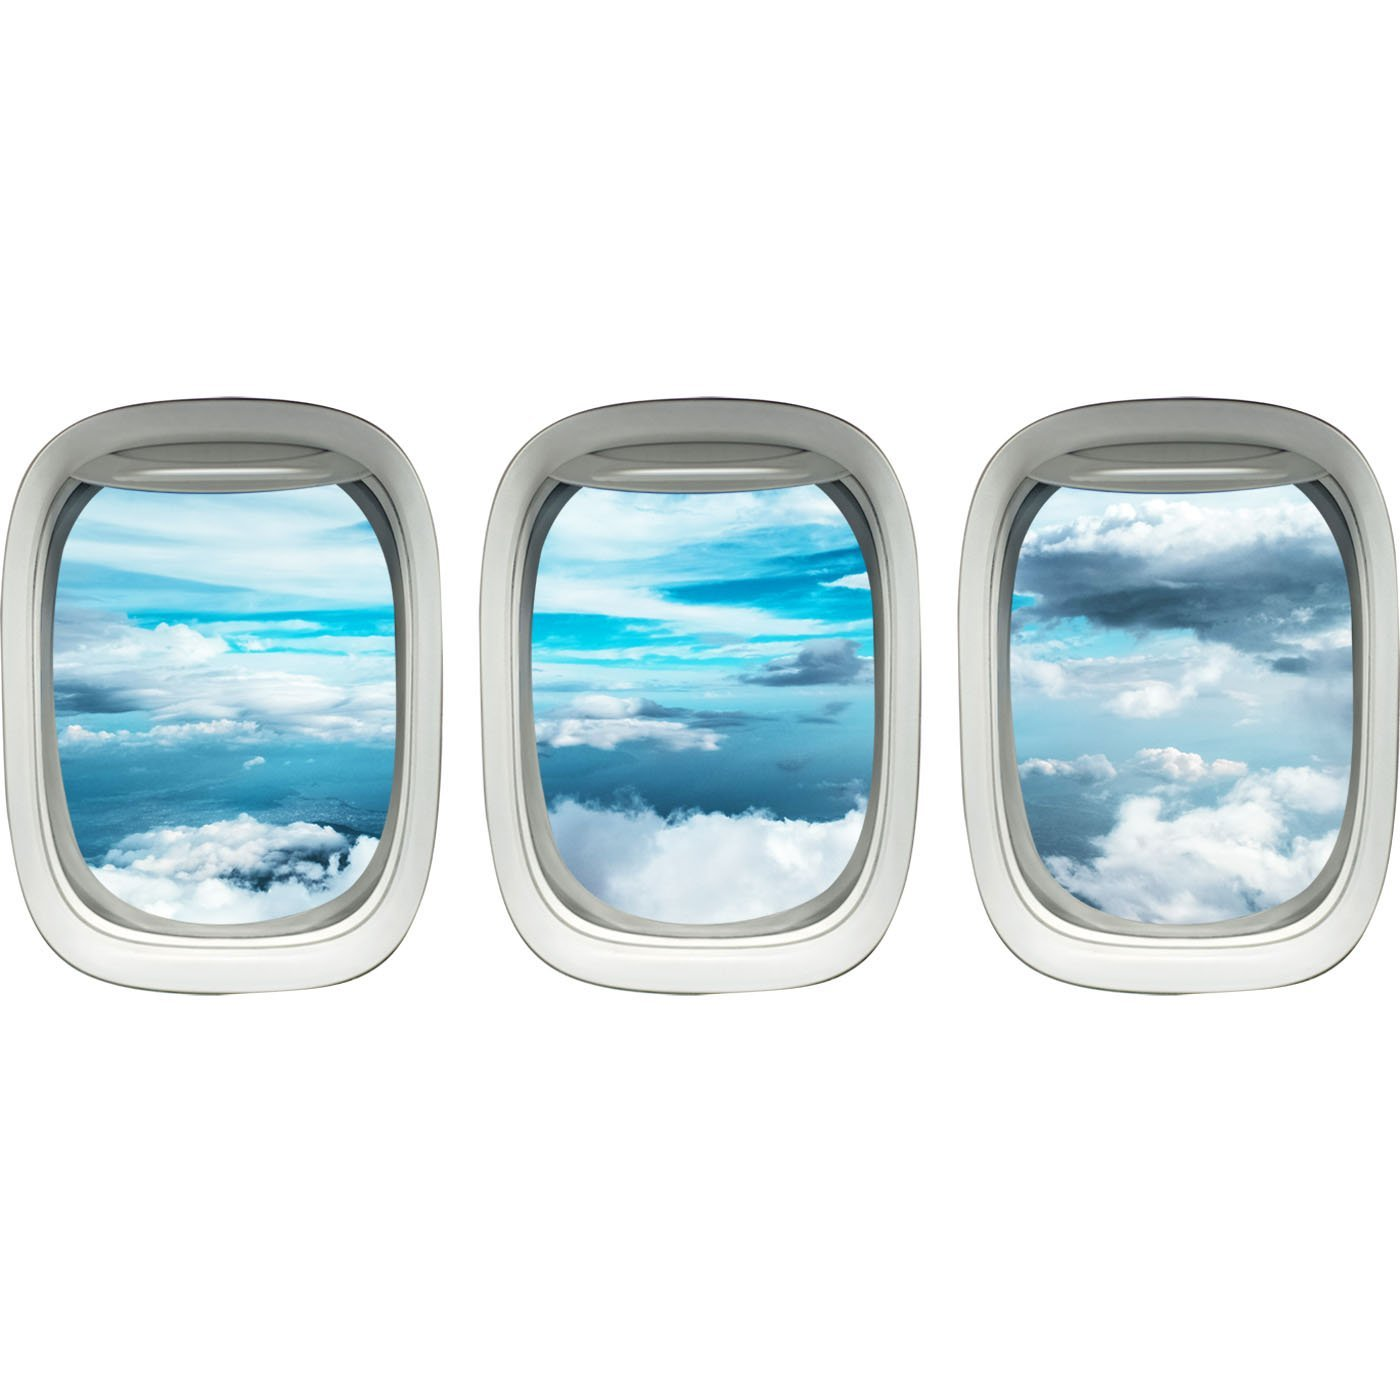 Airplane Window Decals Peel and Stick Pack of 3 Windows - PPW38 - VWAQ Vinyl Wall Art Quotes and Prints